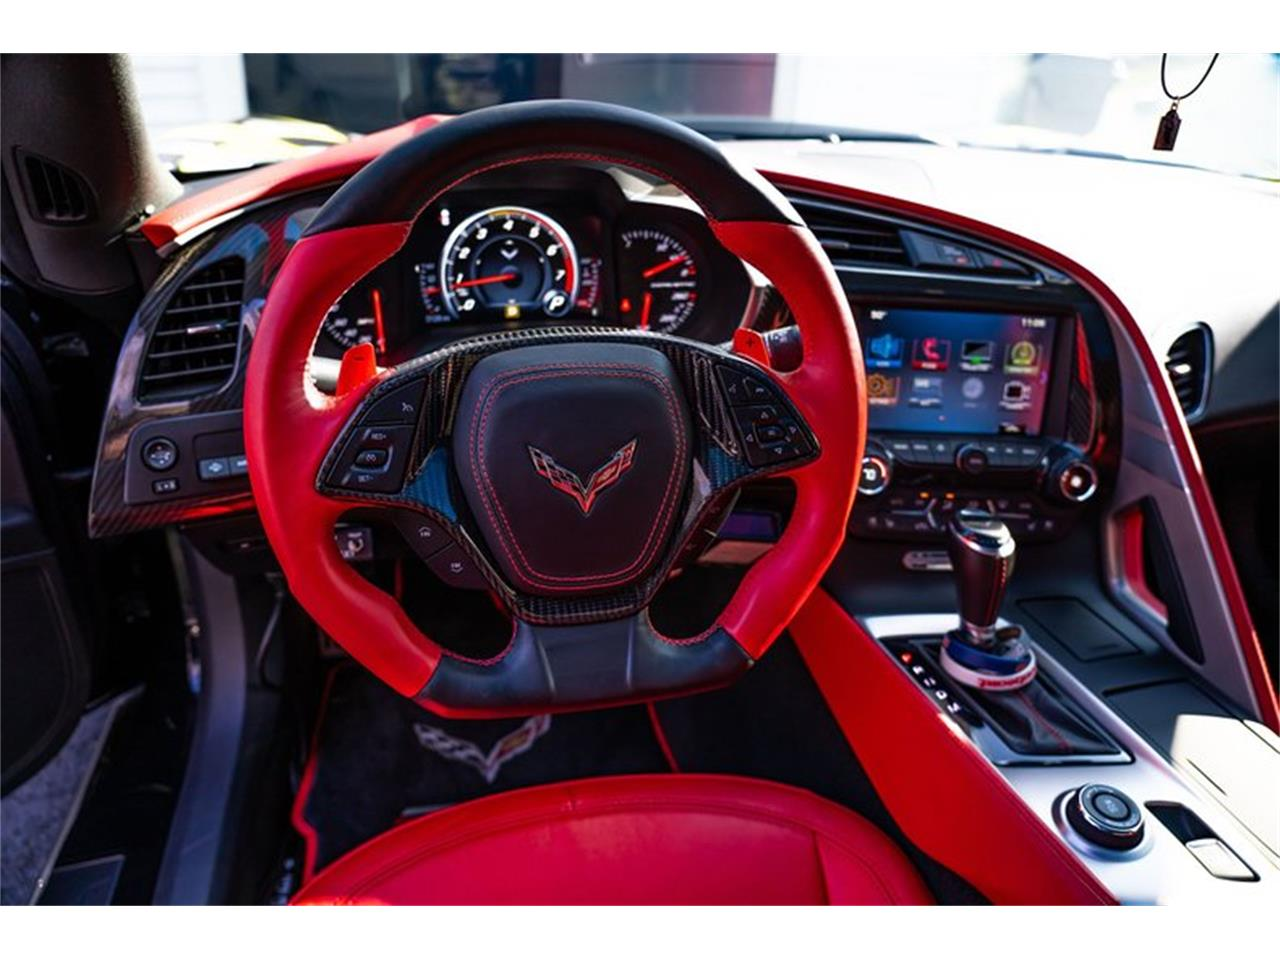 2017 Chevrolet Corvette (CC-1296822) for sale in Wallingford, Connecticut